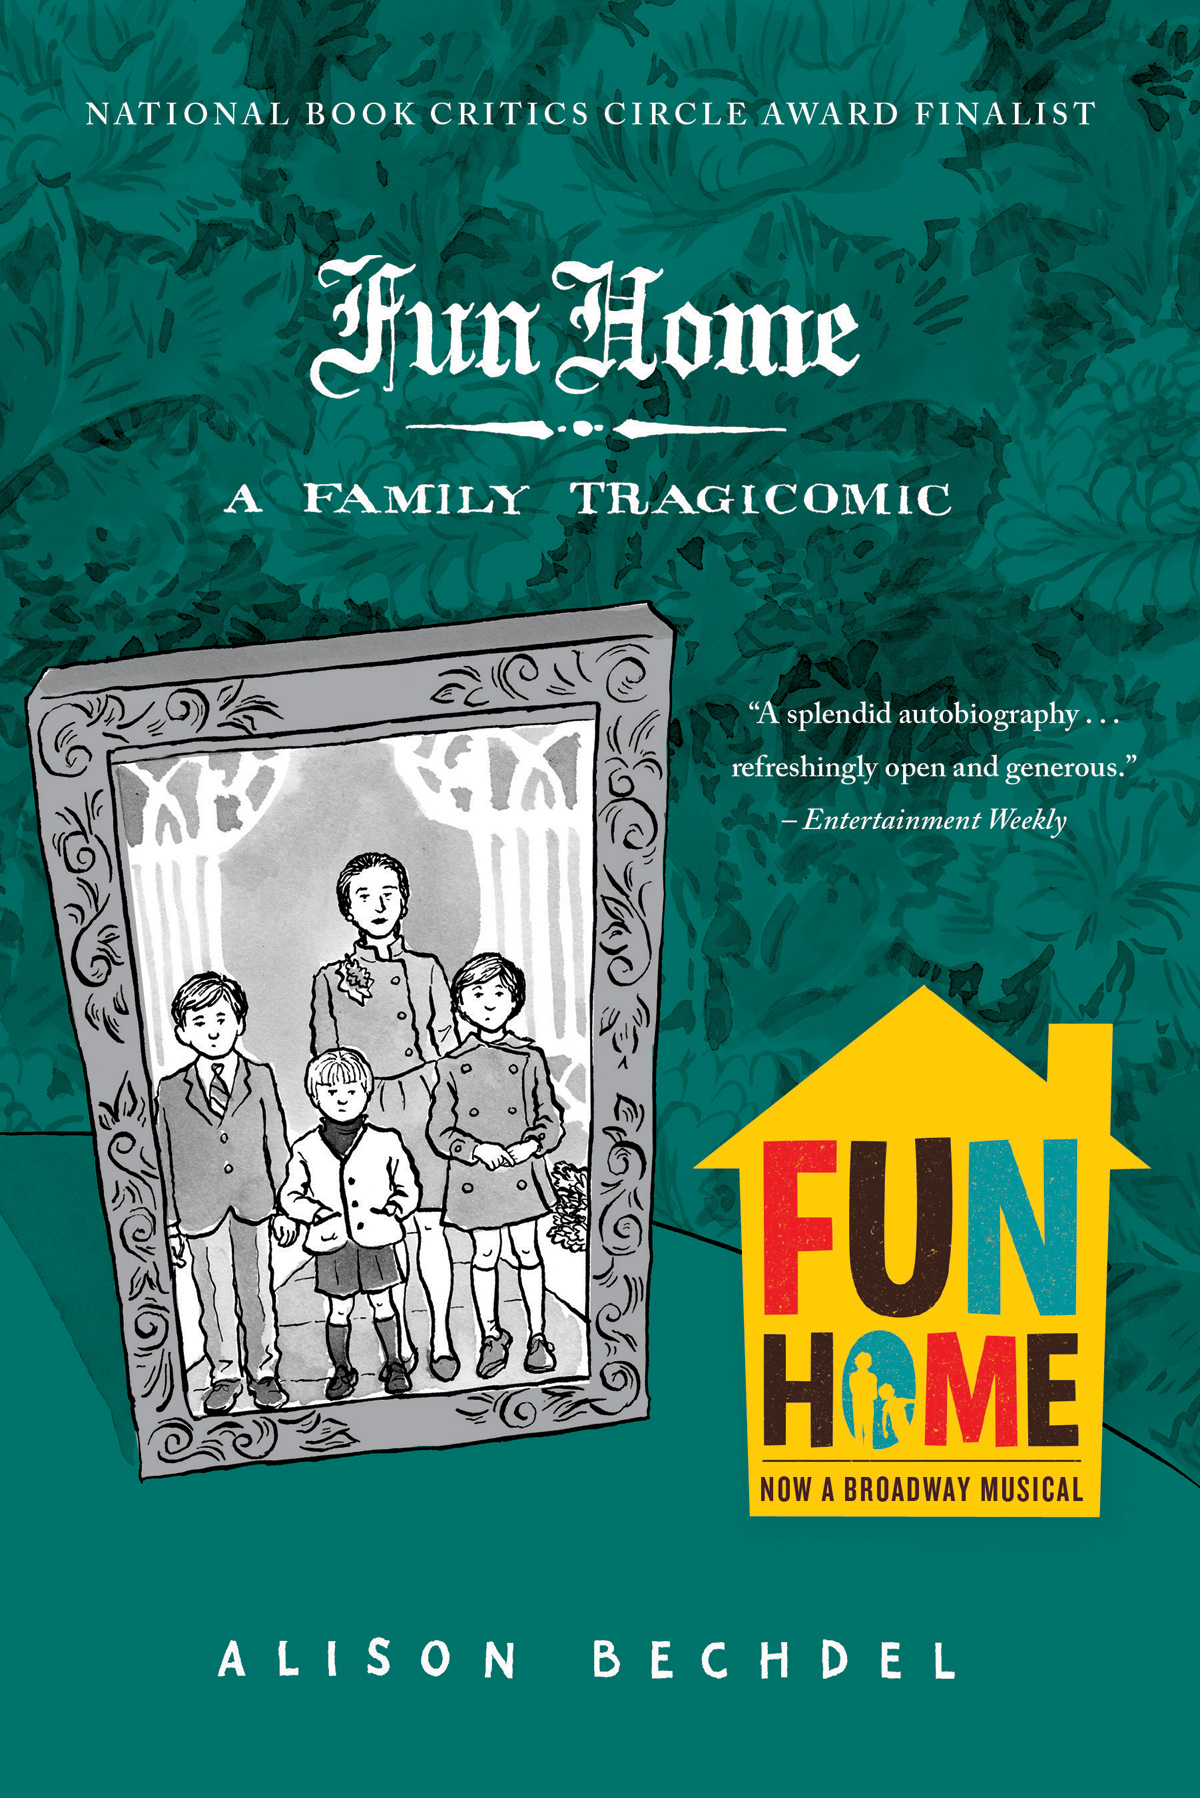 The cover of the book Fun Home